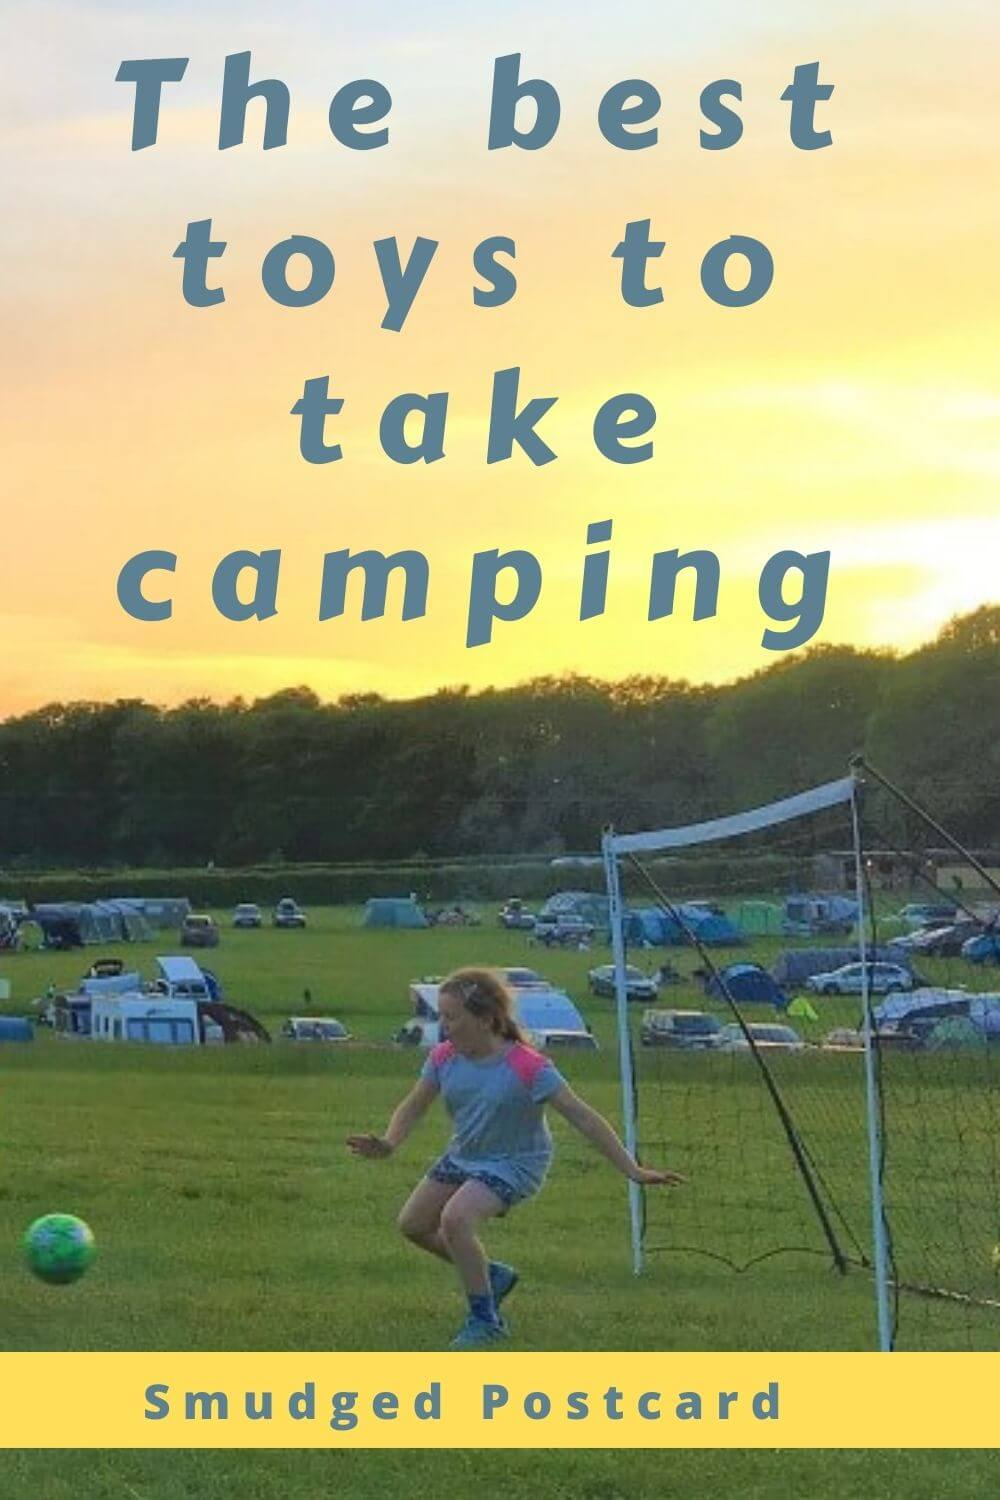 The best toys to take camping for kids